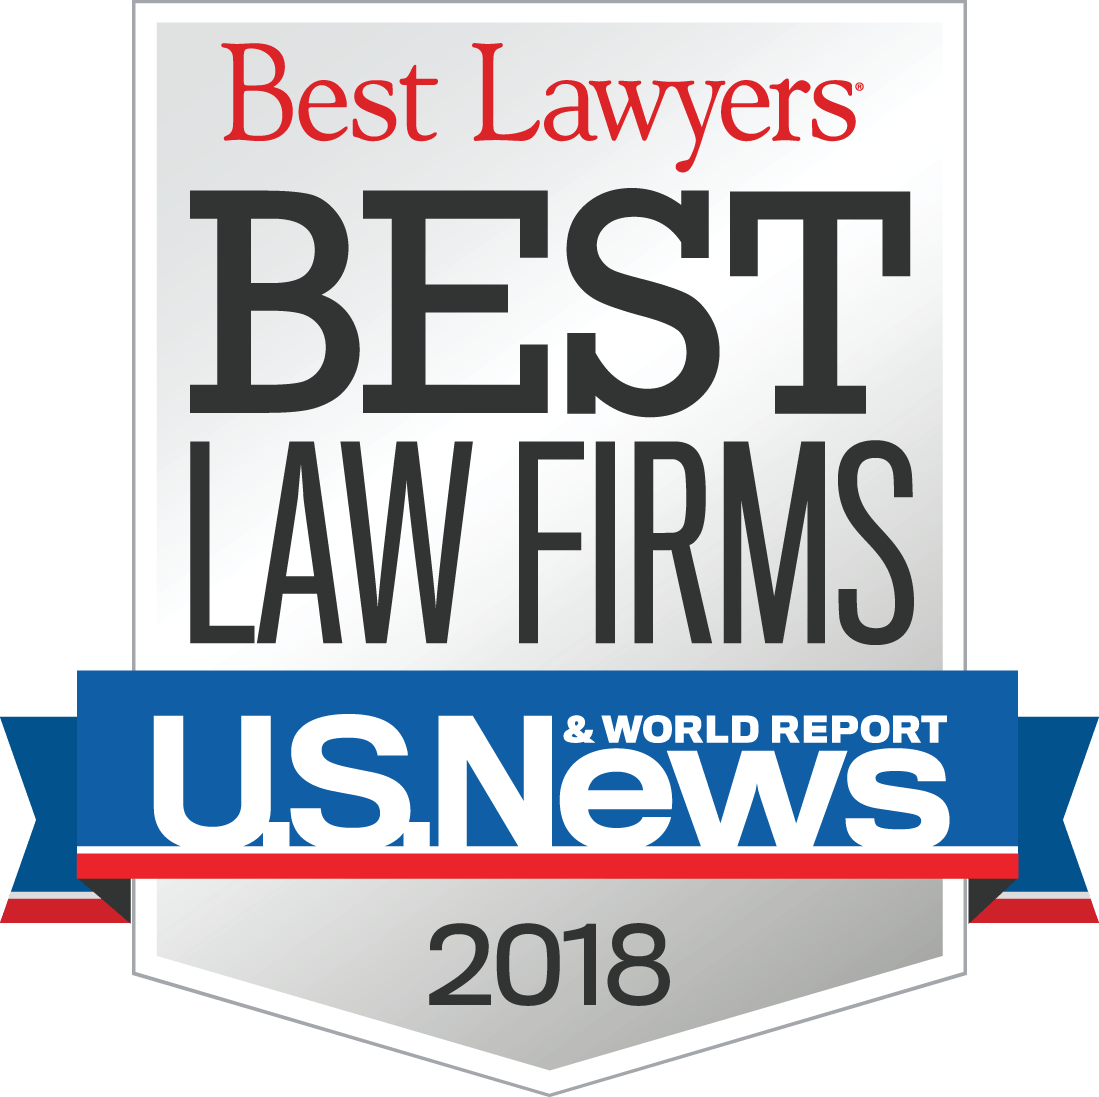 US News Best Law Firms 2018